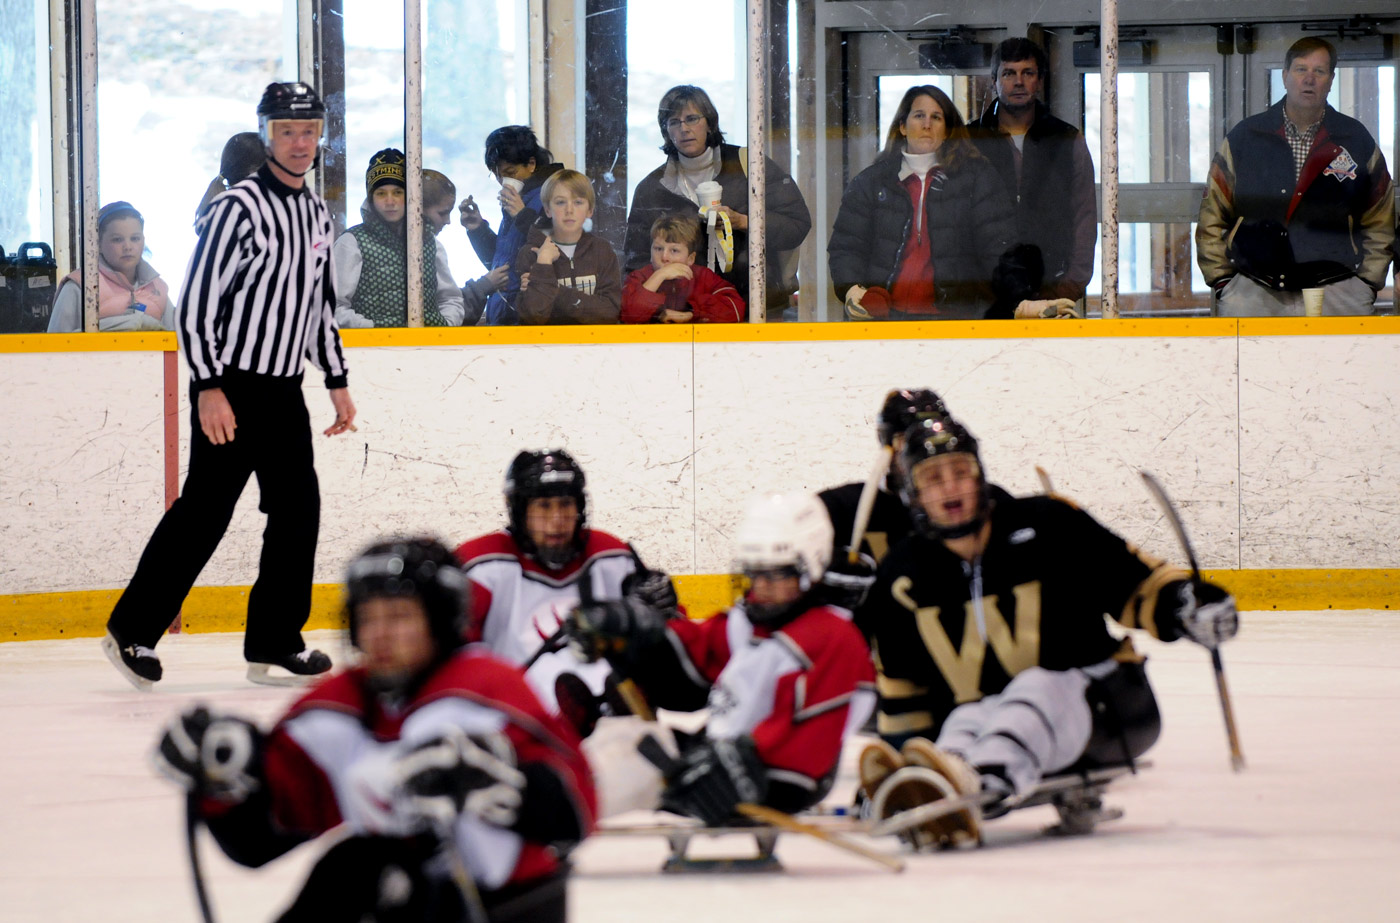 Spectators watch the action during a exhibition match between the Westminster high school hockey players and members of the Wolf Pack.